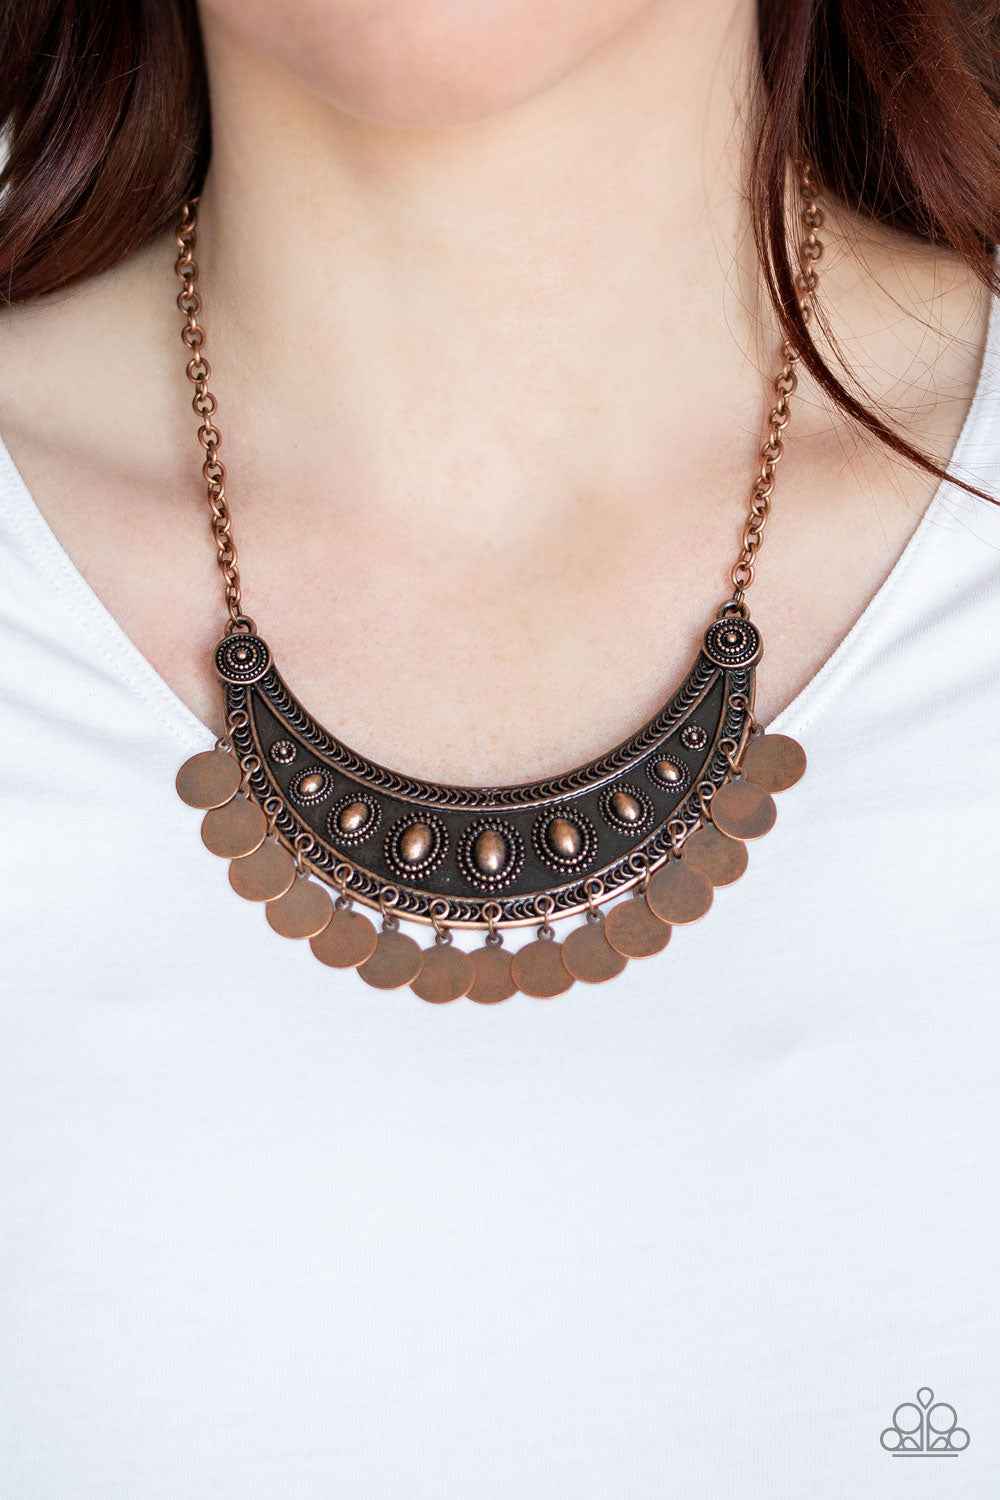 CHIMEs UP - Copper Necklace - Paparazzi Accessories